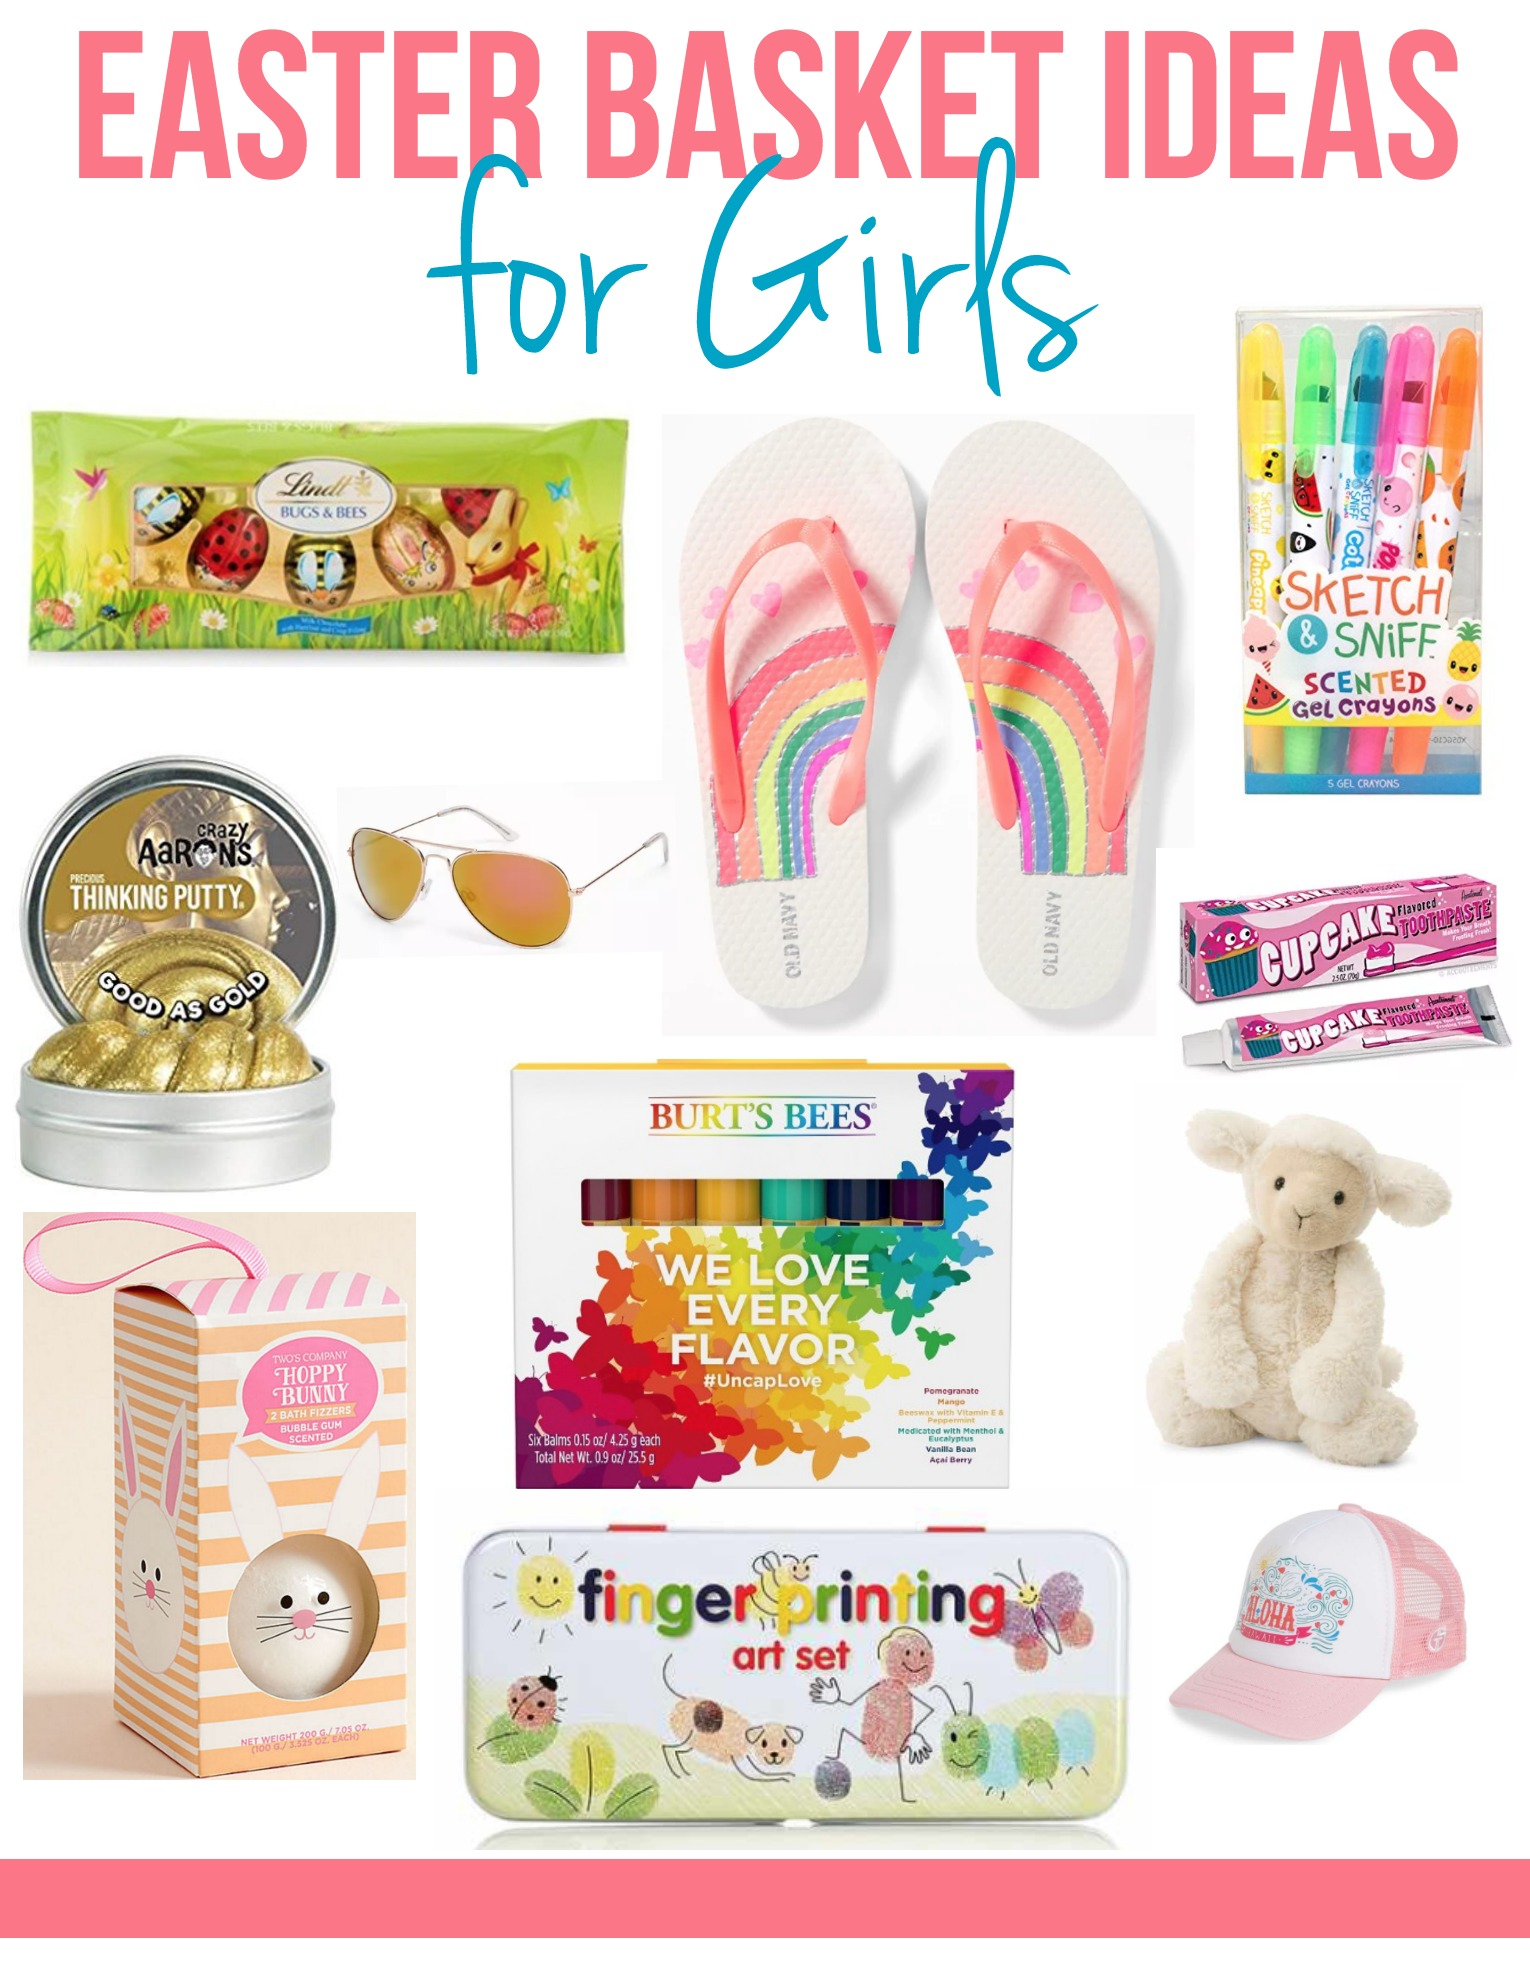 Easter basket ideas for girls archives my frugal adventures easter basket ideas for girls on myfrugaladventures cute little gift ideas for girls negle